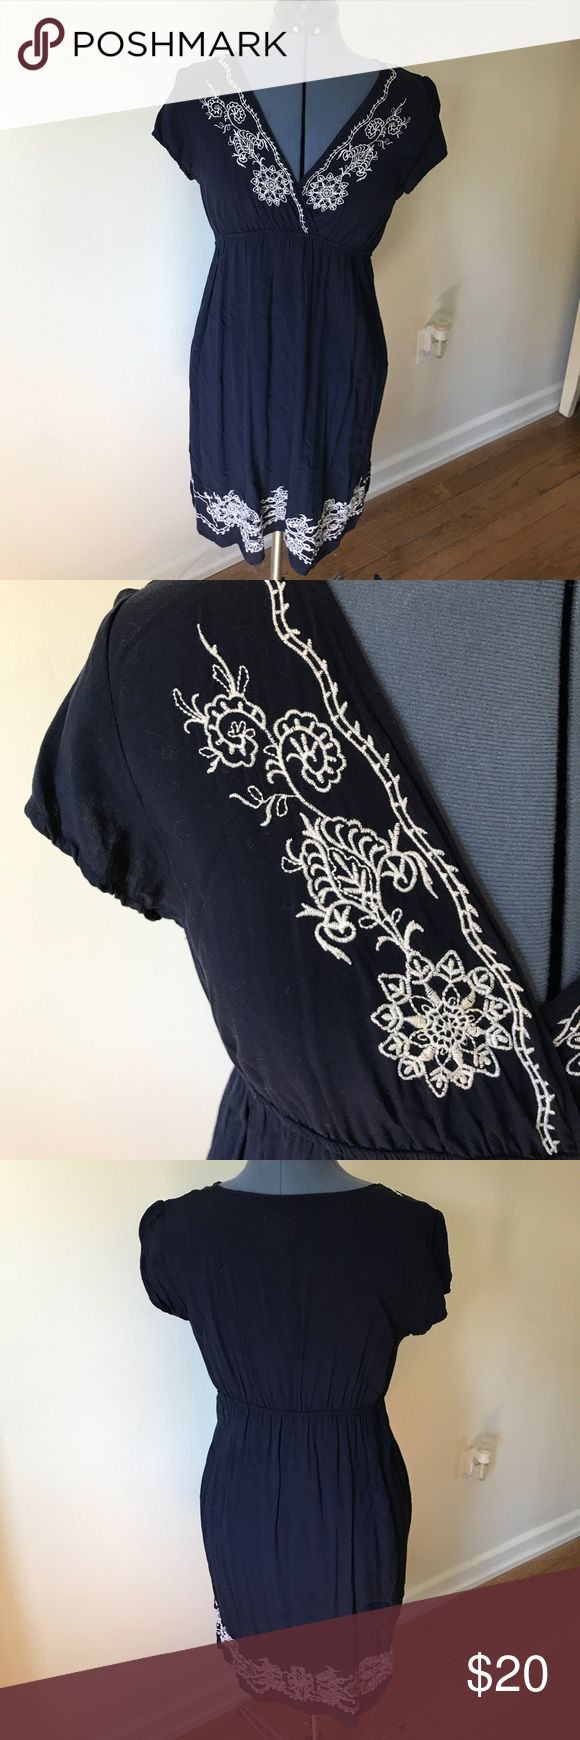 Charming Charlie embroidered dress Soft and airy, this whimsical embroidered dress is perfect for warm summer days. Classic navy blue with elegant white embroidery. Excellent condition. Charming Charlie Dresses